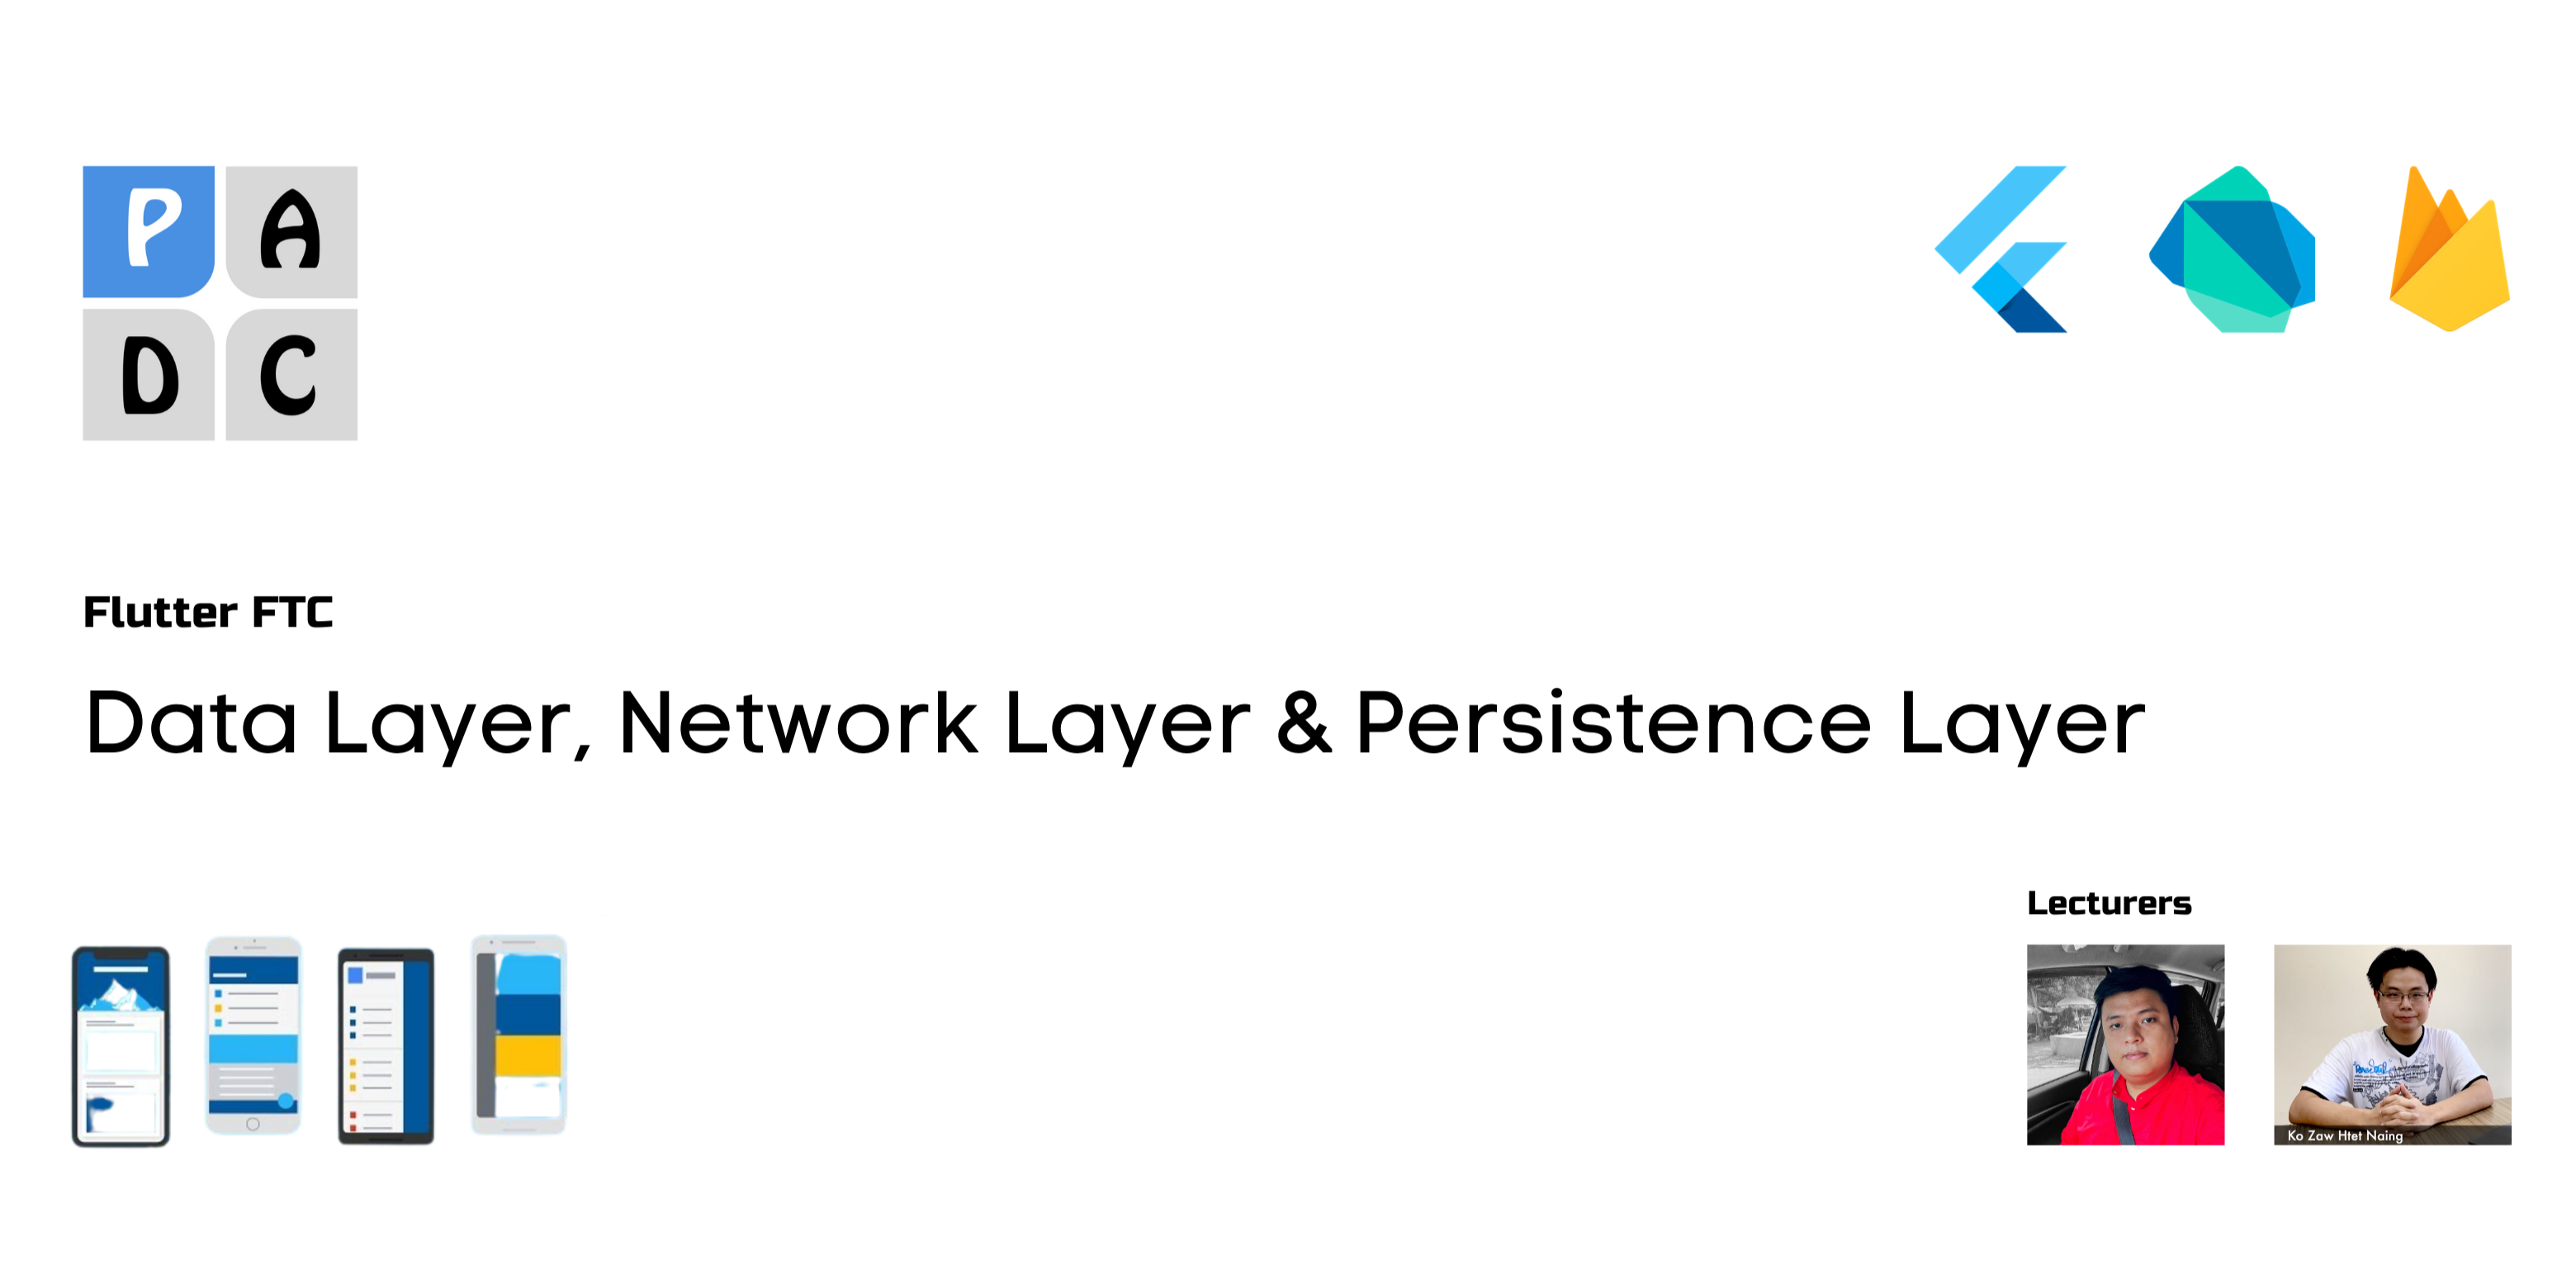 Data Layer, Network Layer & Persistence Layer